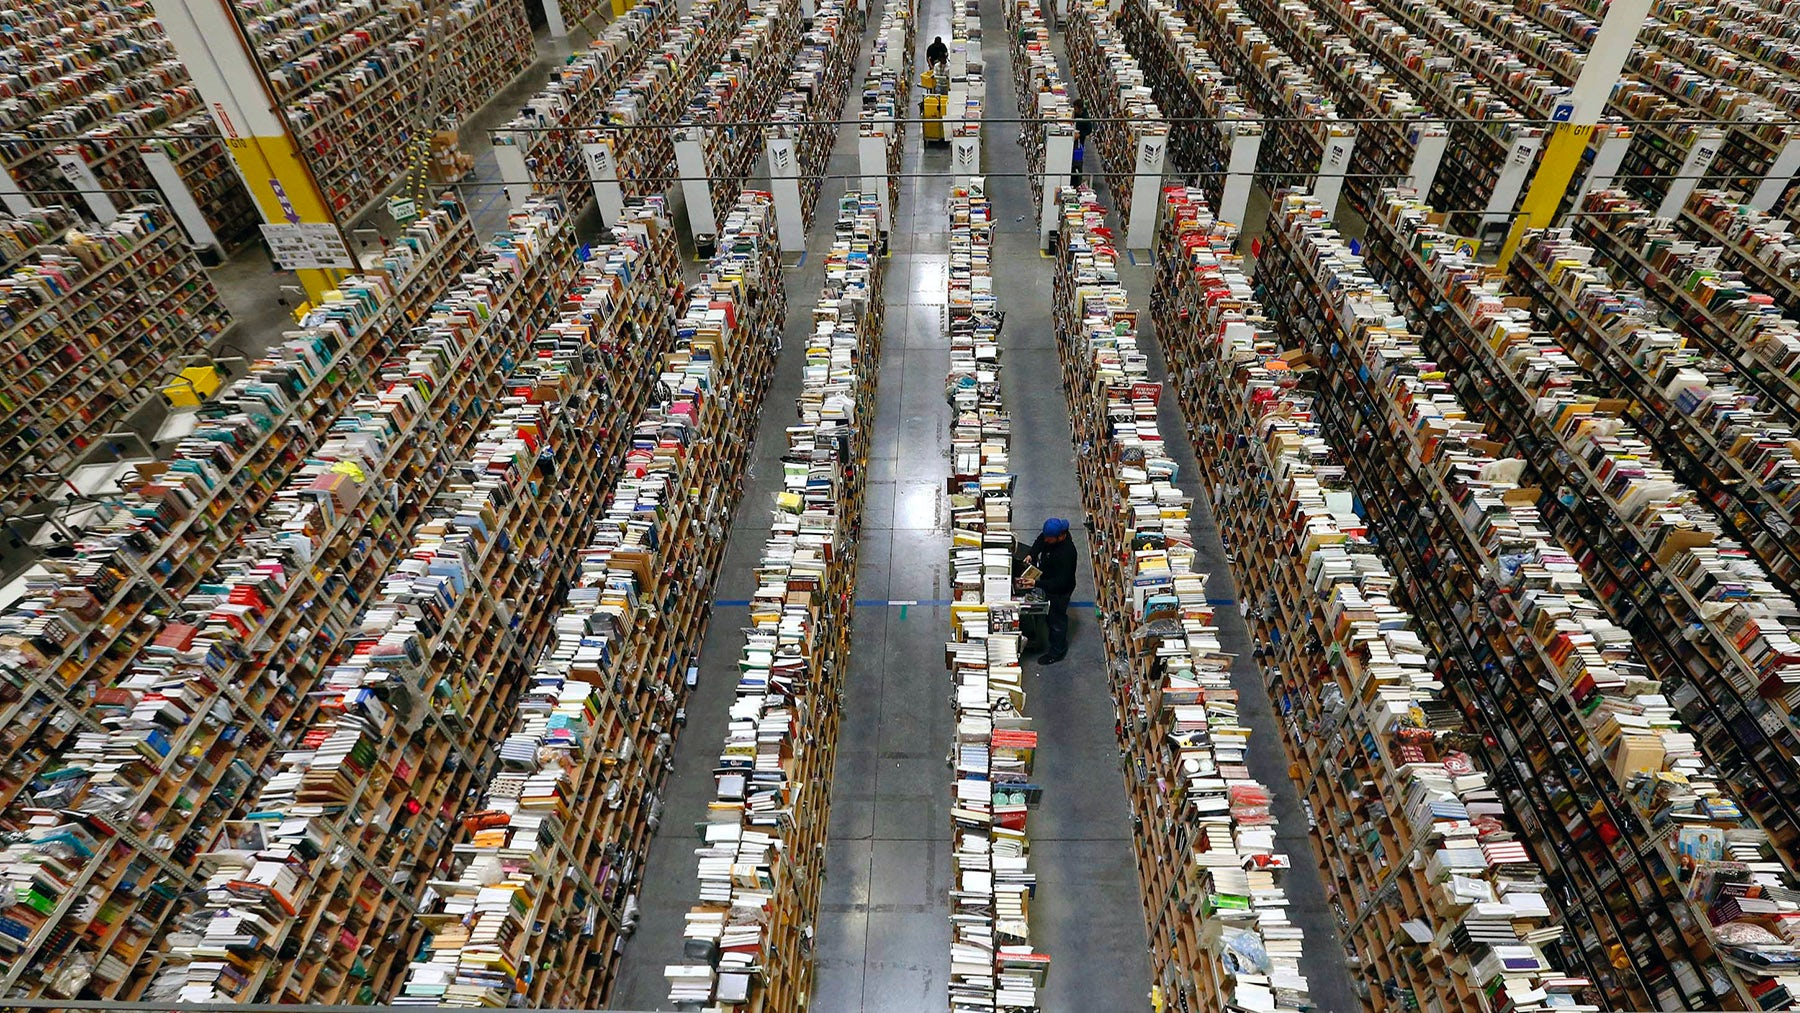 Amazon fulfilment centre | Source: Amazon